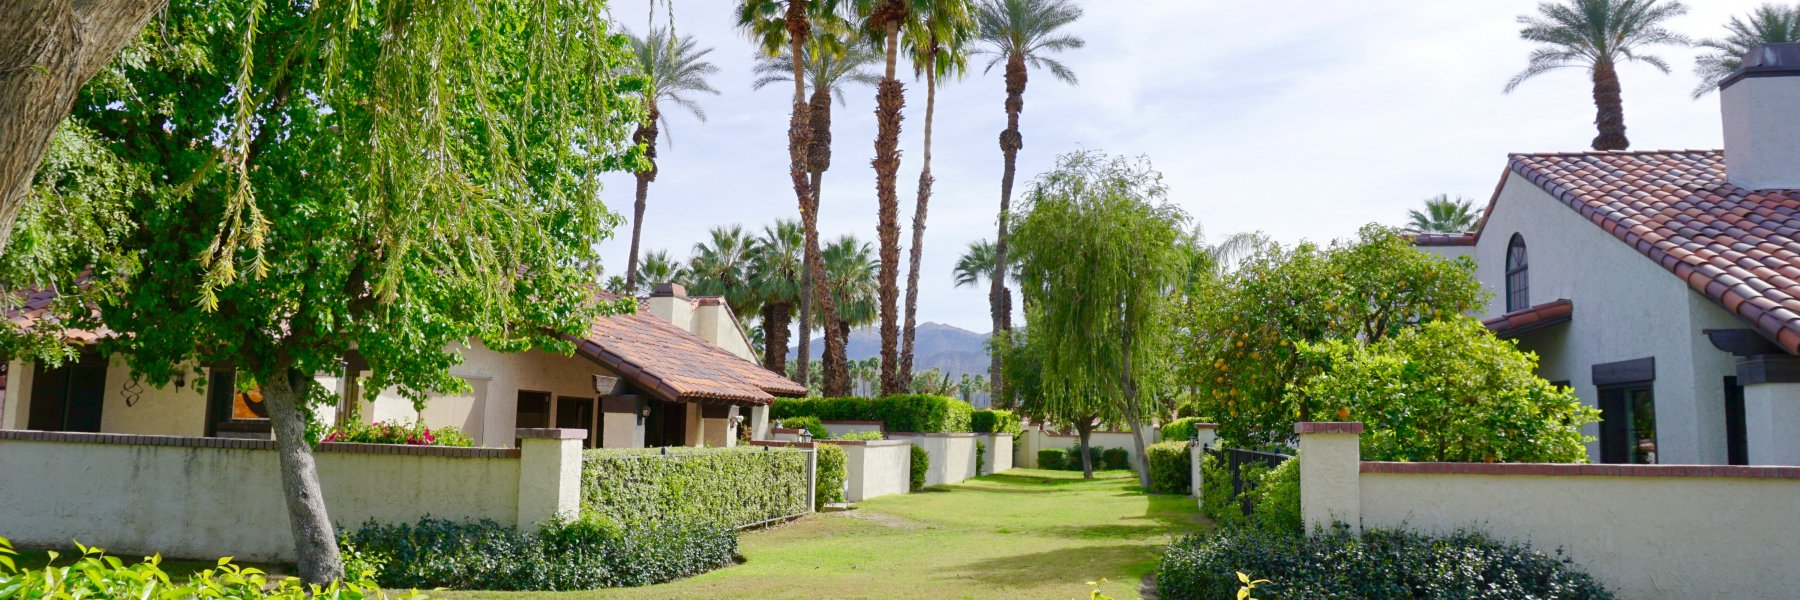 Casas De Seville is a community of homes in Rancho Mirage California